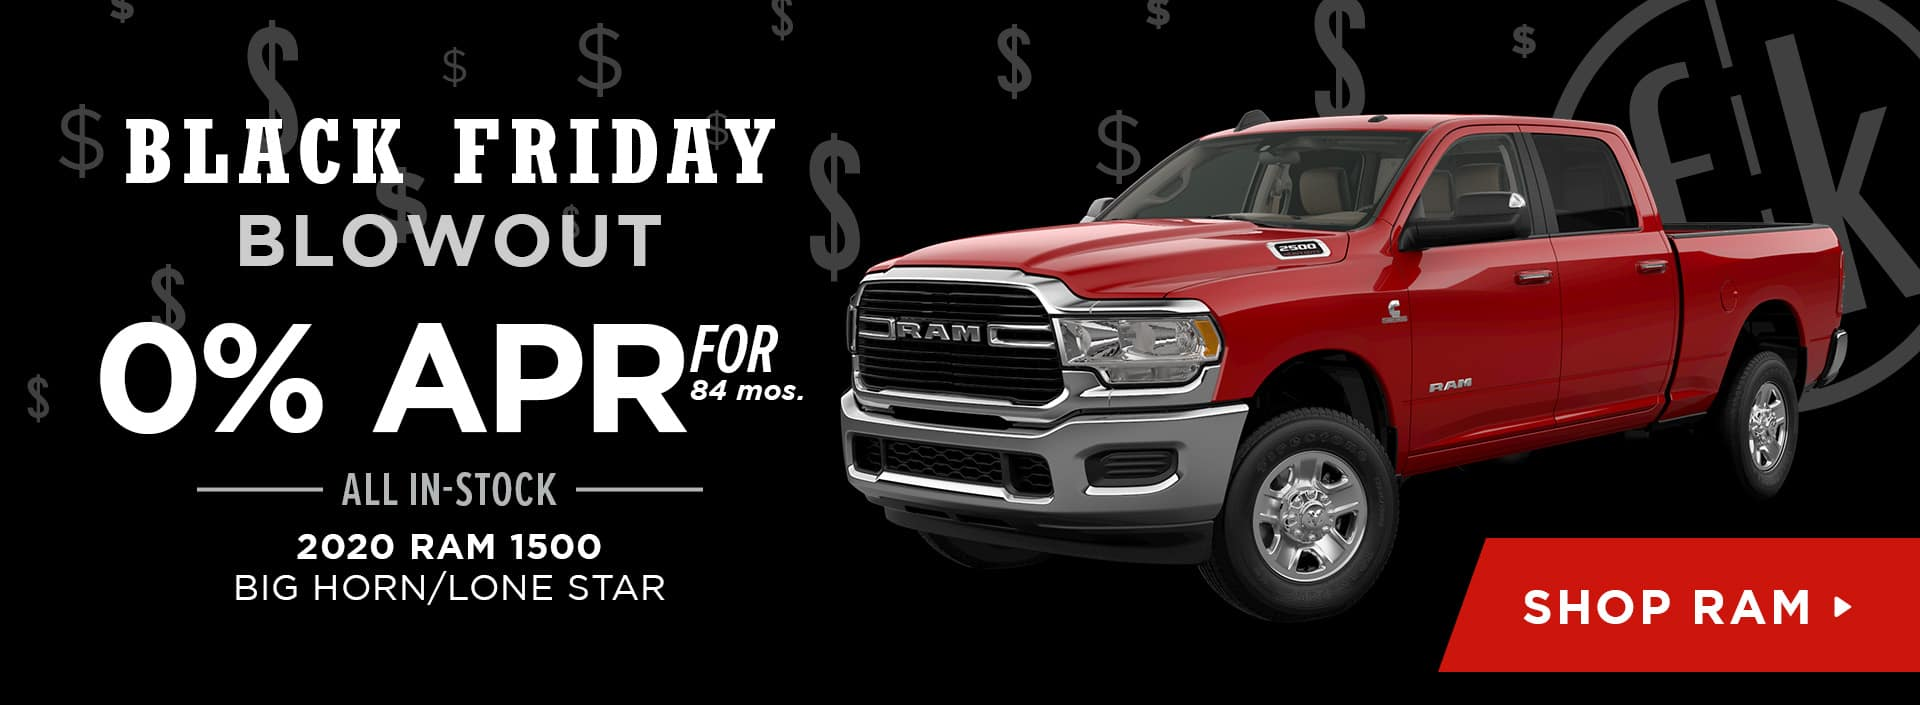 0% for 84 mos. All In-Stock 2020 RAM 1500 Big Horn/Lone Star